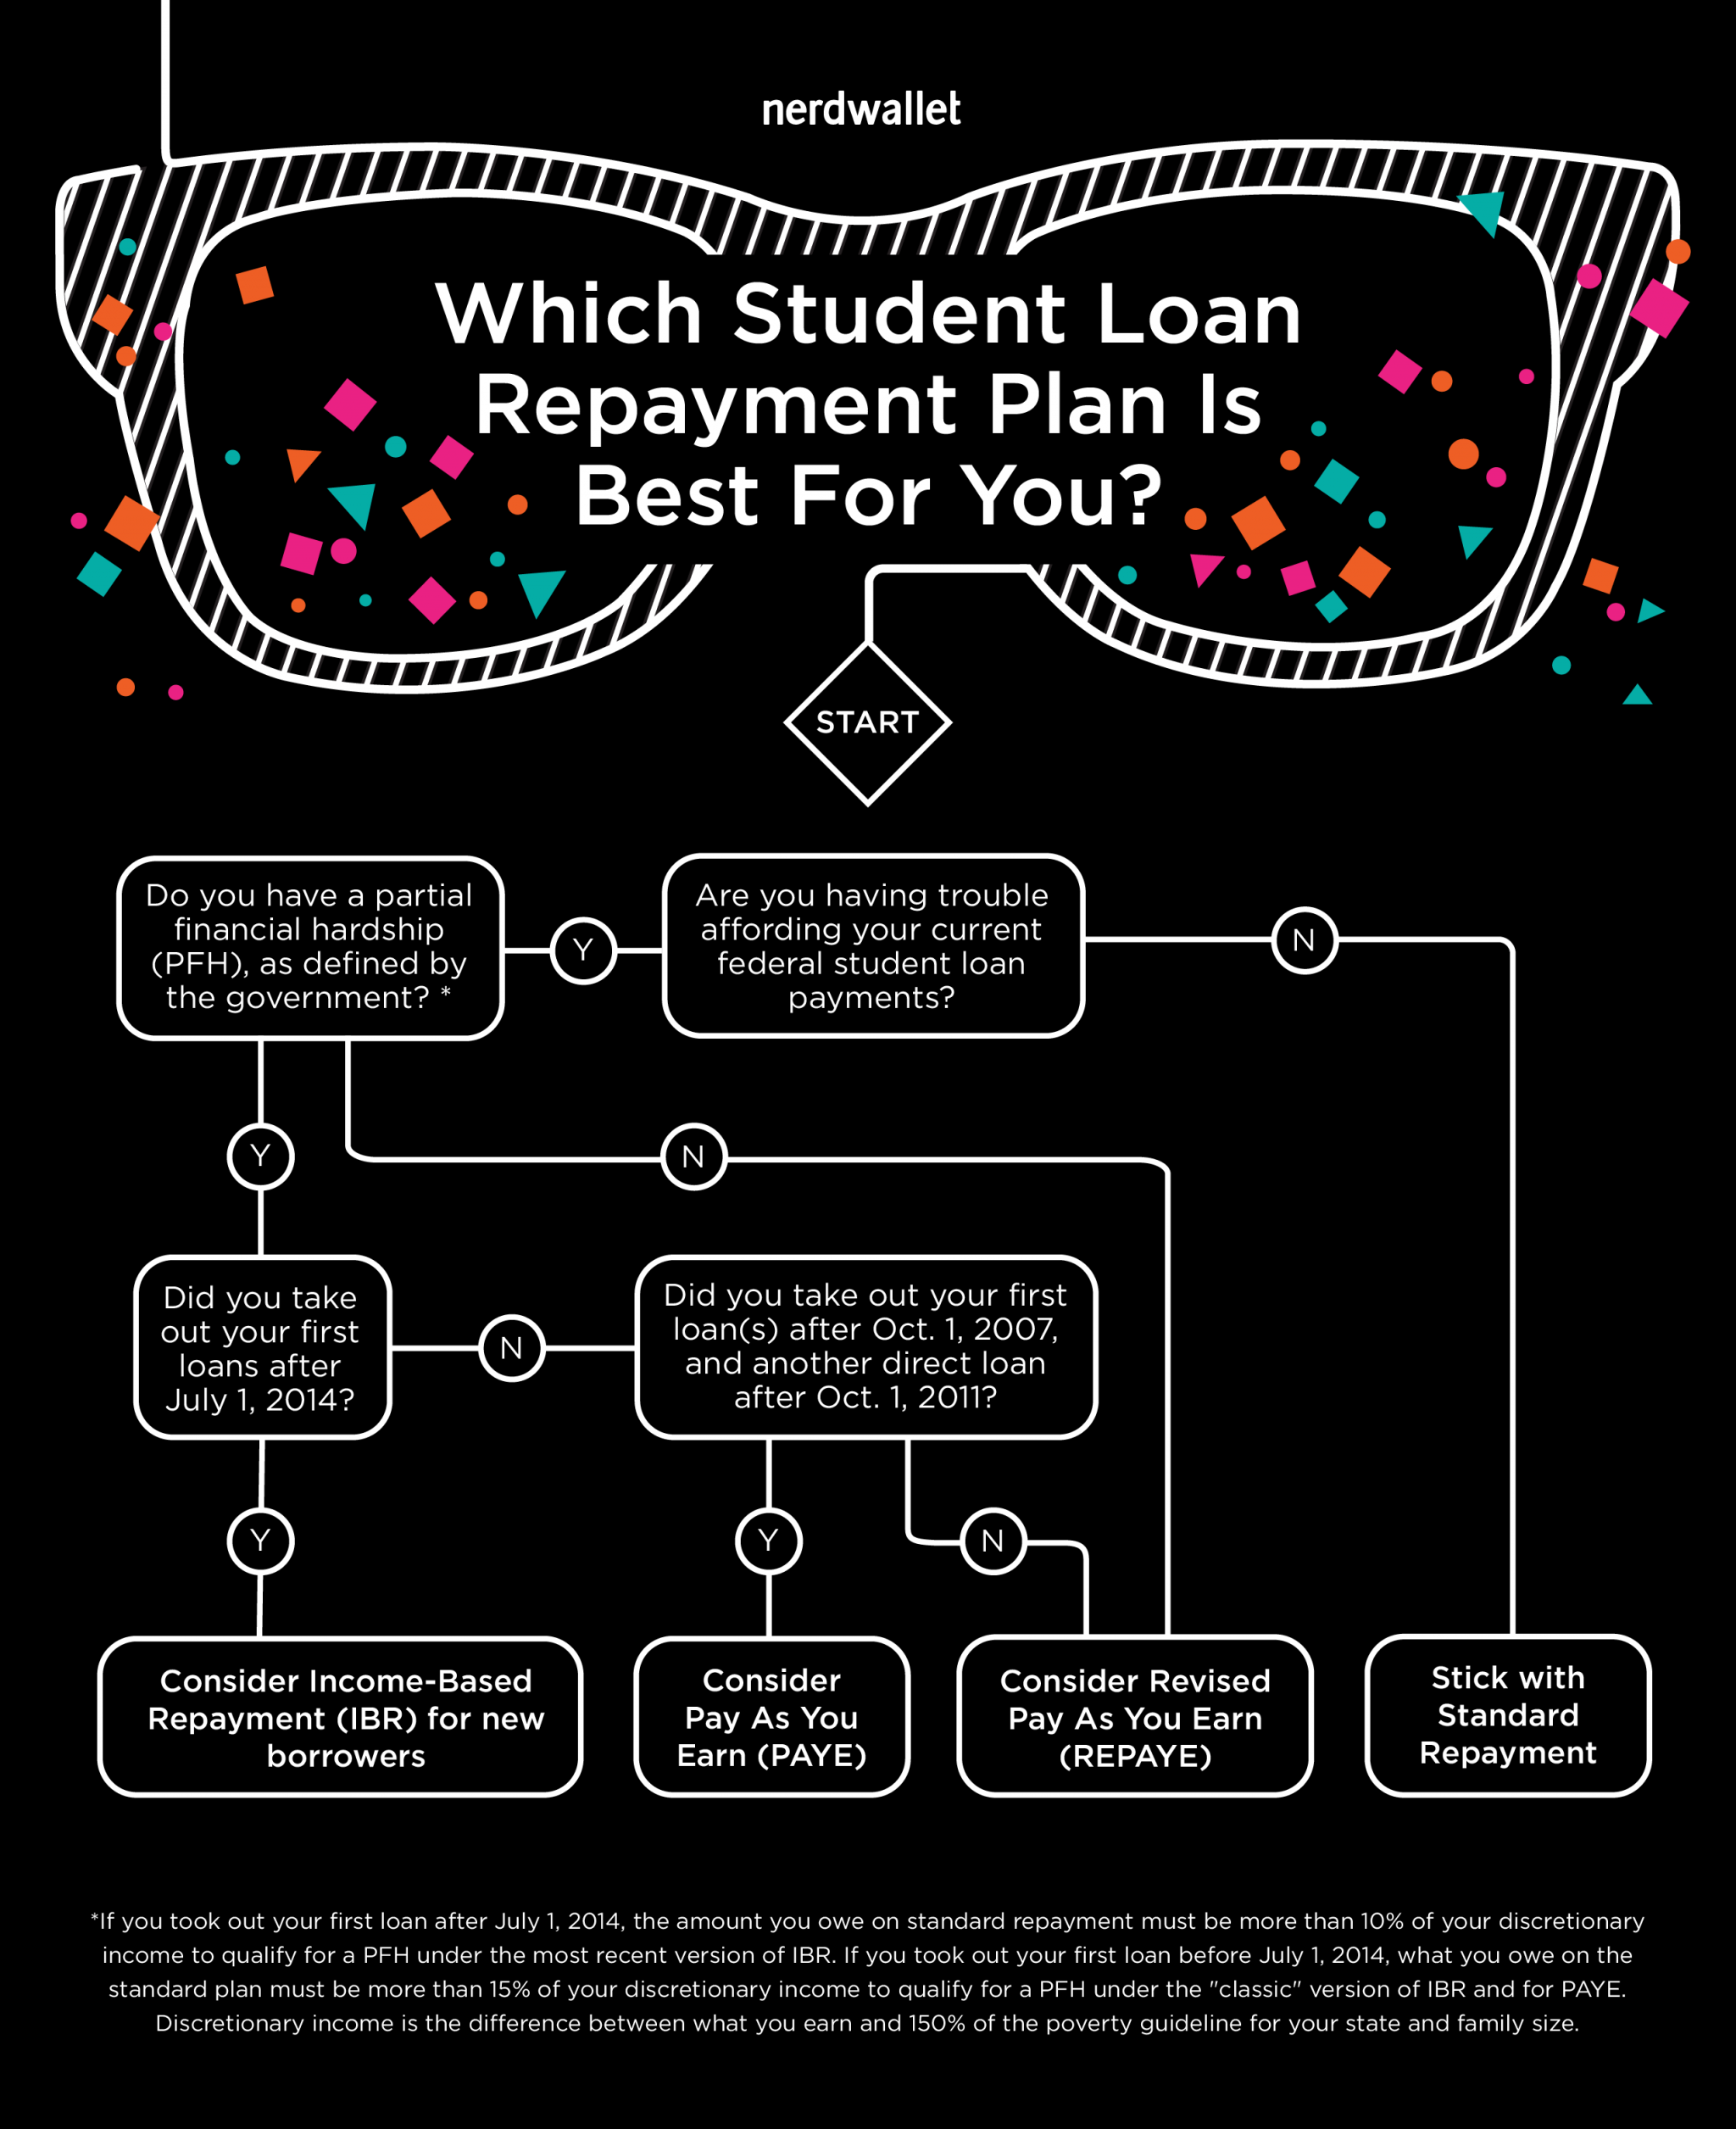 Best repayment option for student loans